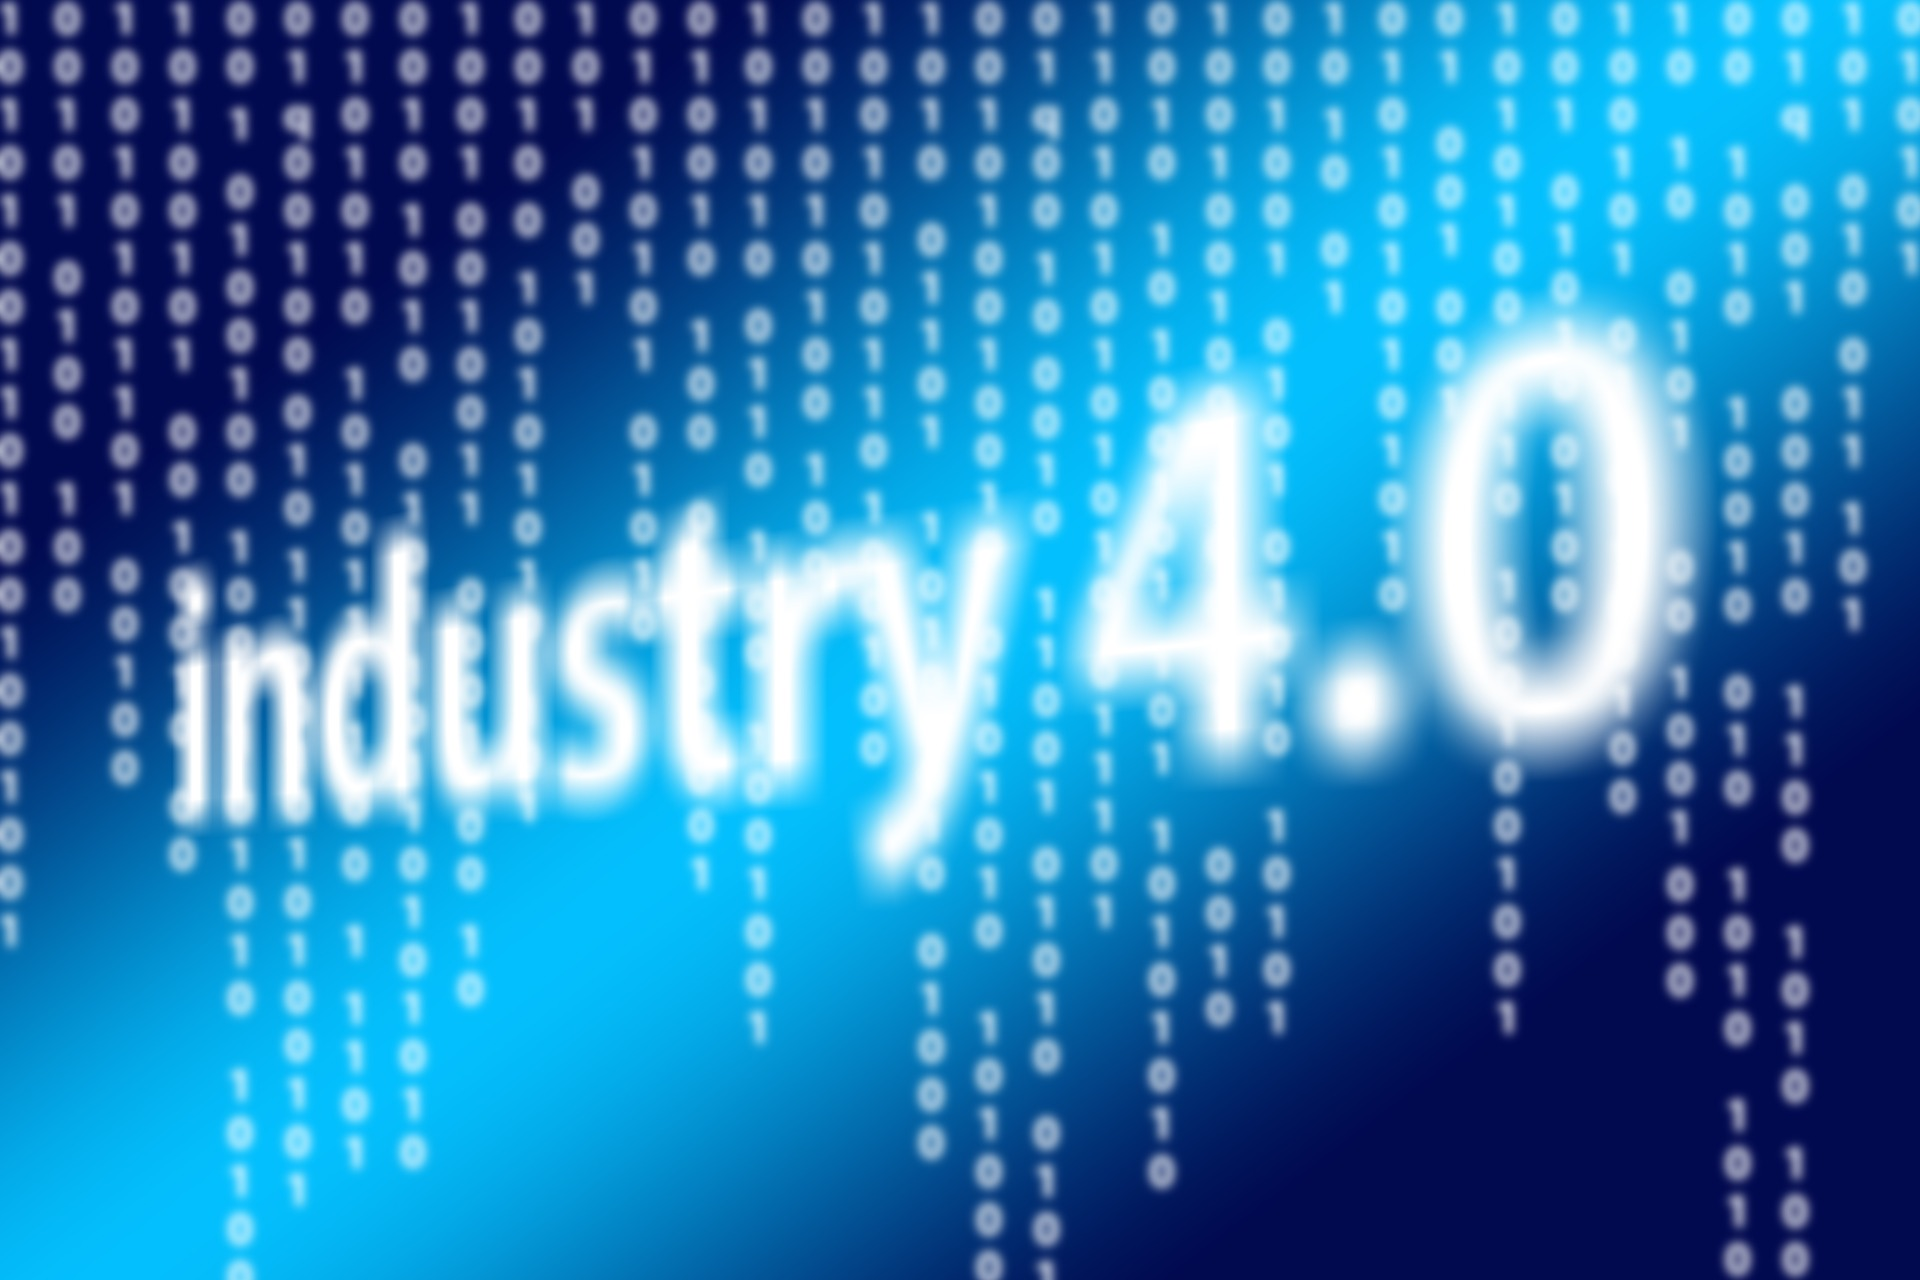 Is 'Industry 4.0' a Revolution, or Gimmick?